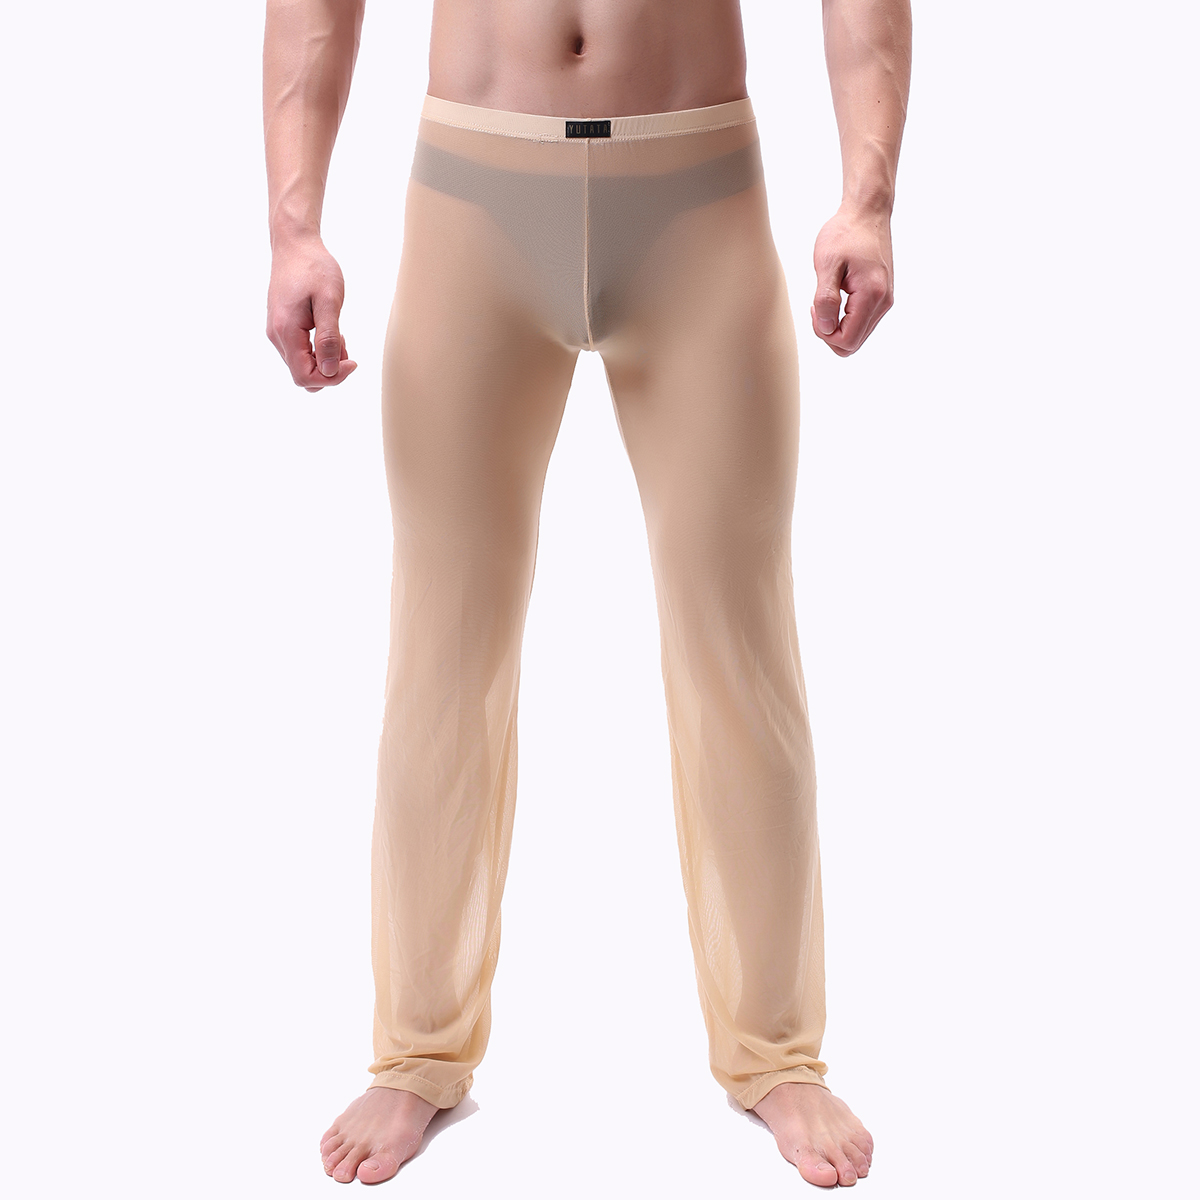 Mens Pants Mens Sleep Bottoms Home Pants Loose Sexy Mens Lounge Pants See Through Sexy Male Pajamas Sleepwear